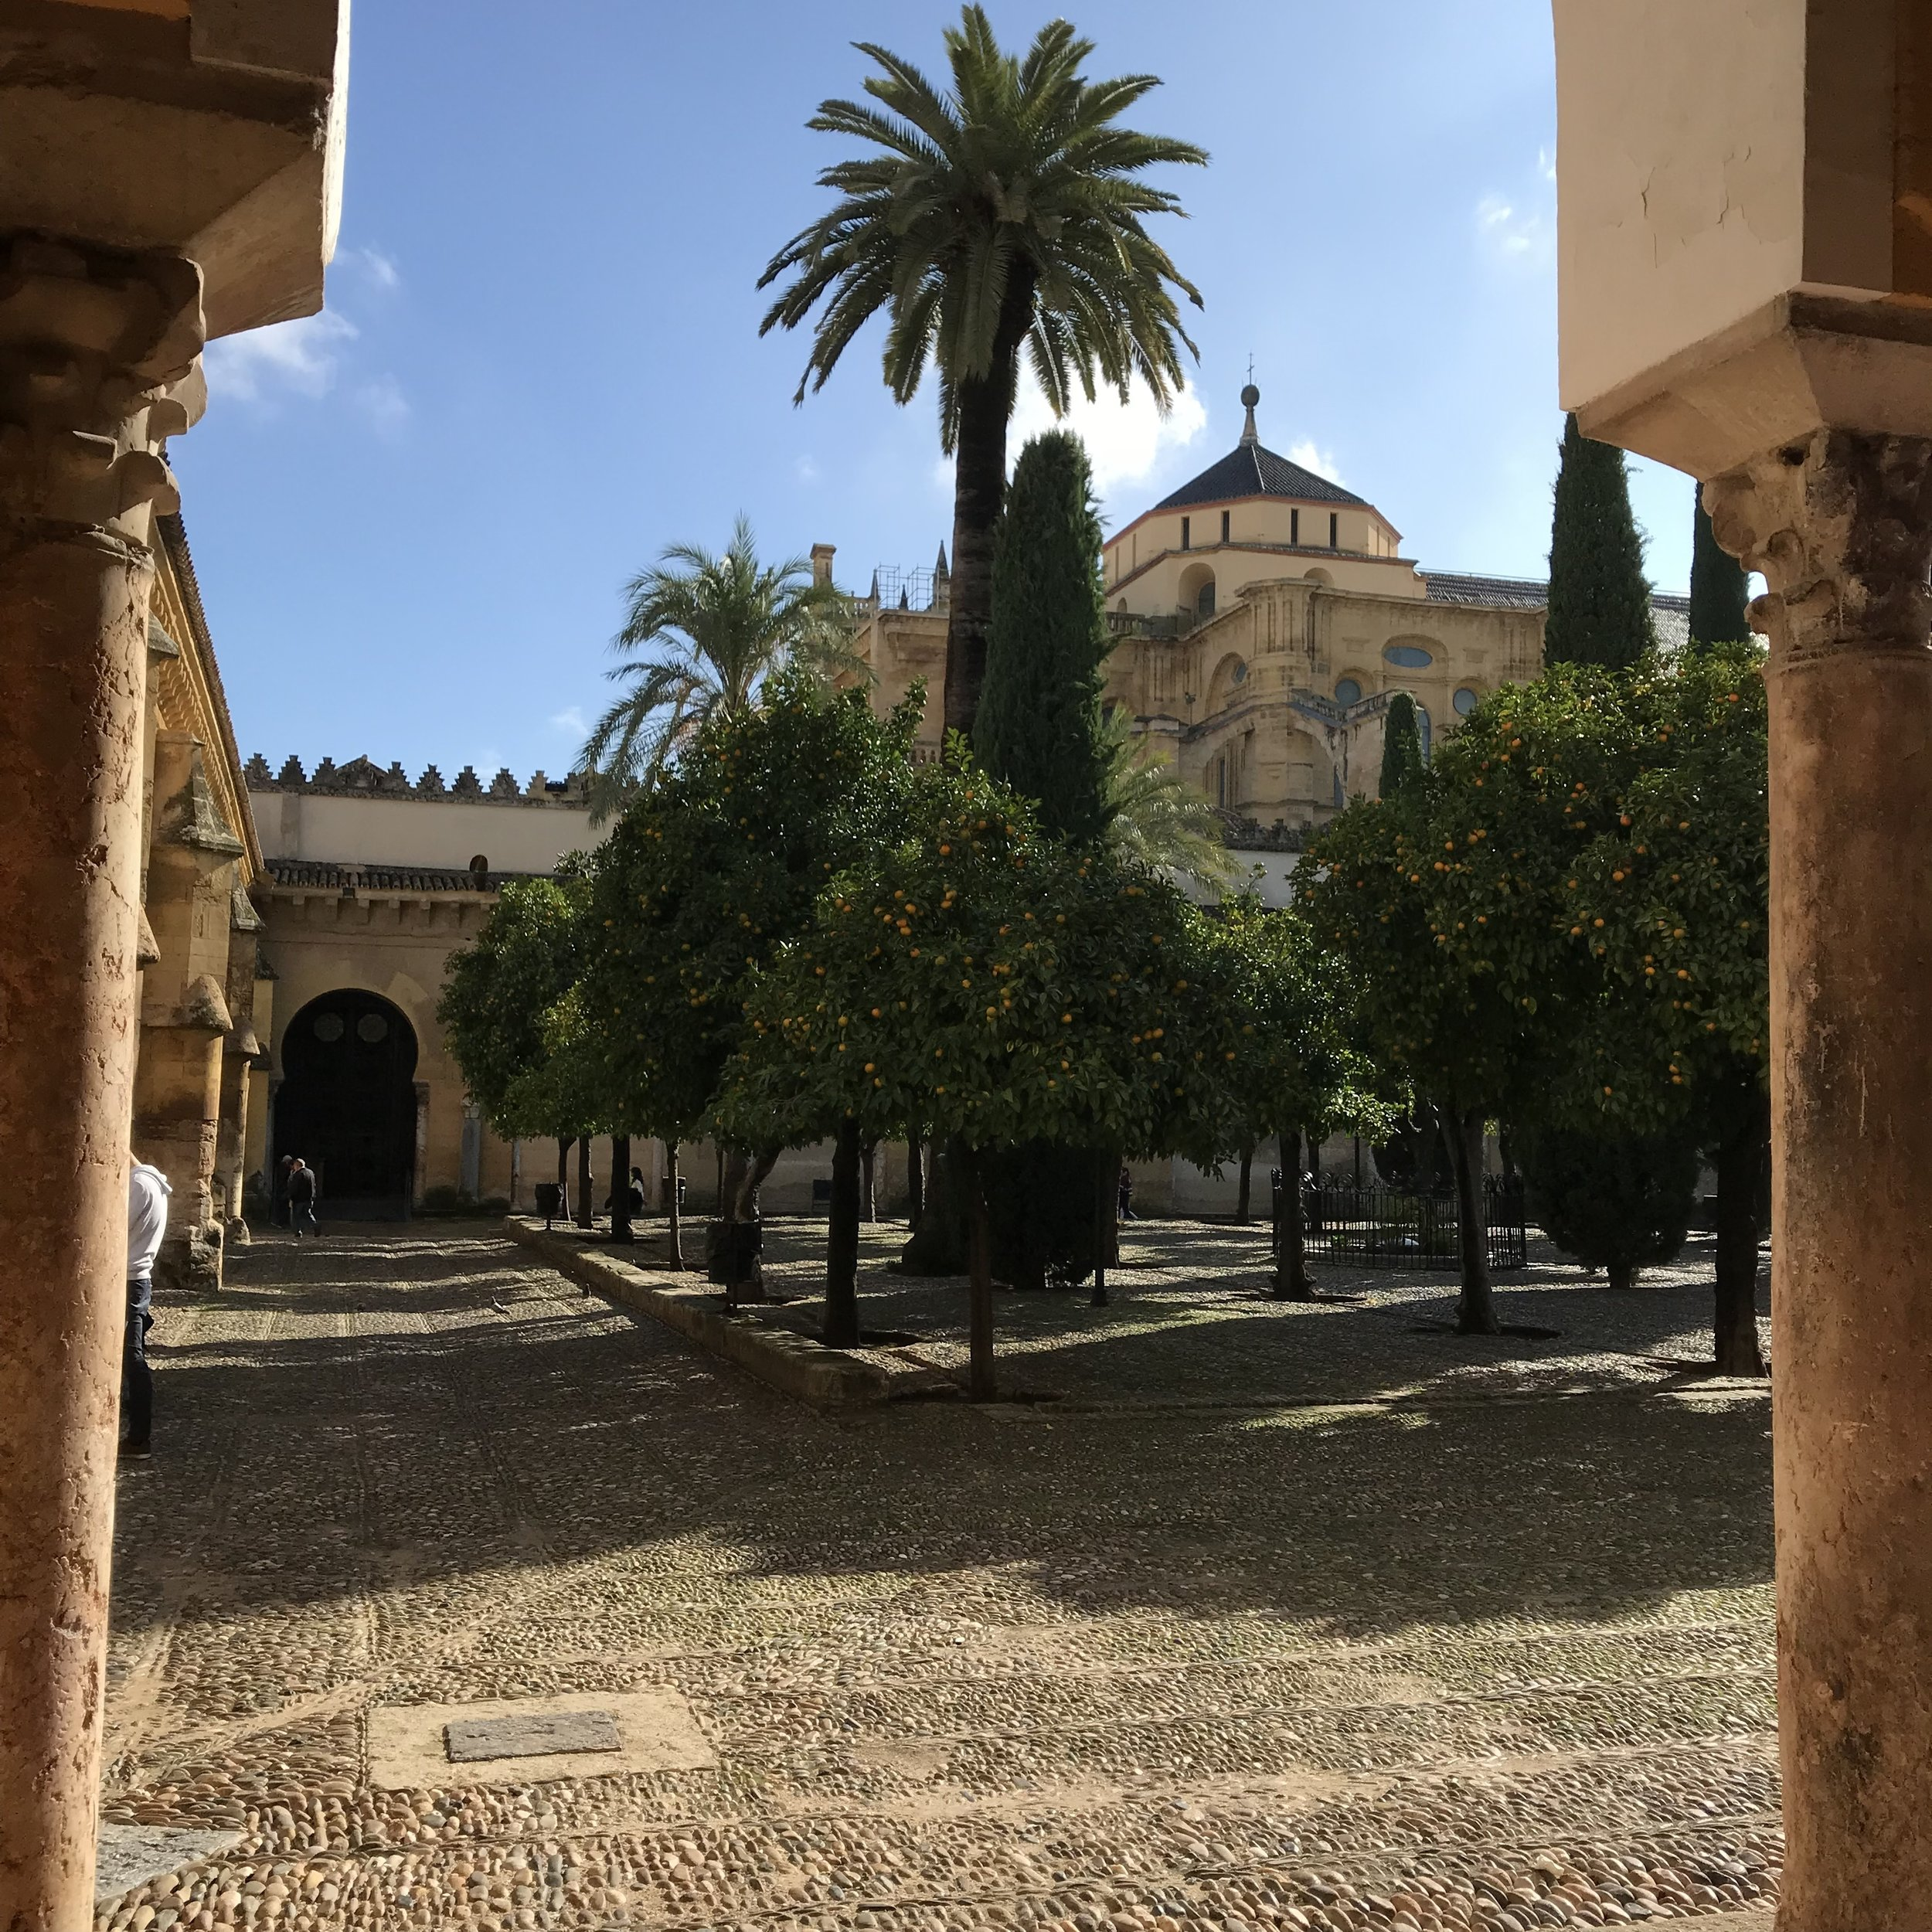 The Mosque-Cathedral of Cordoba. Most extraordinary history. Up to the present ... it's not more than two years ago that Moin's dad was forbidden from praying here by police. Layers and layers of cultures mixing (or not!) in some surprising ways sometimes.